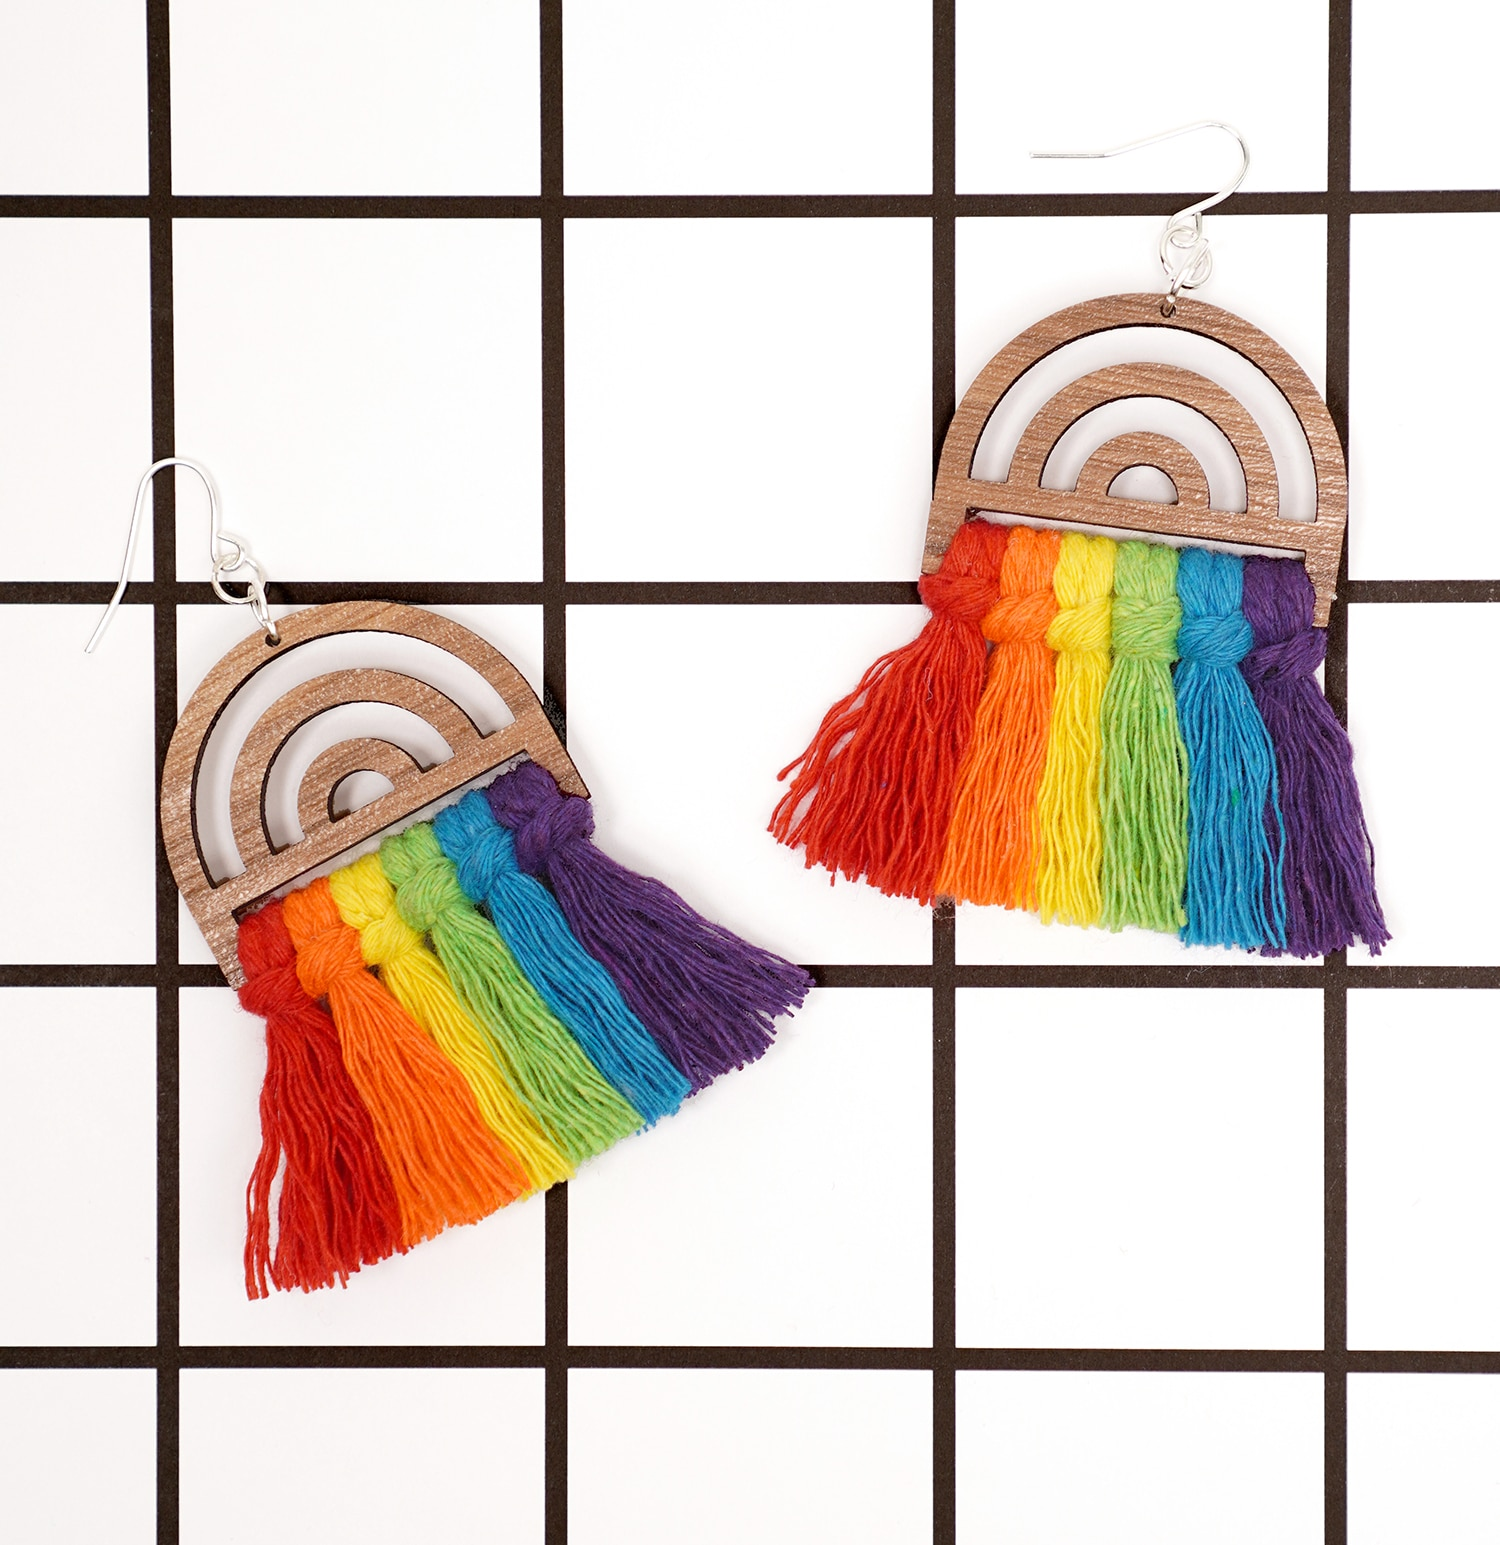 Rainbow macrame earrings on white background with bold black grid lines